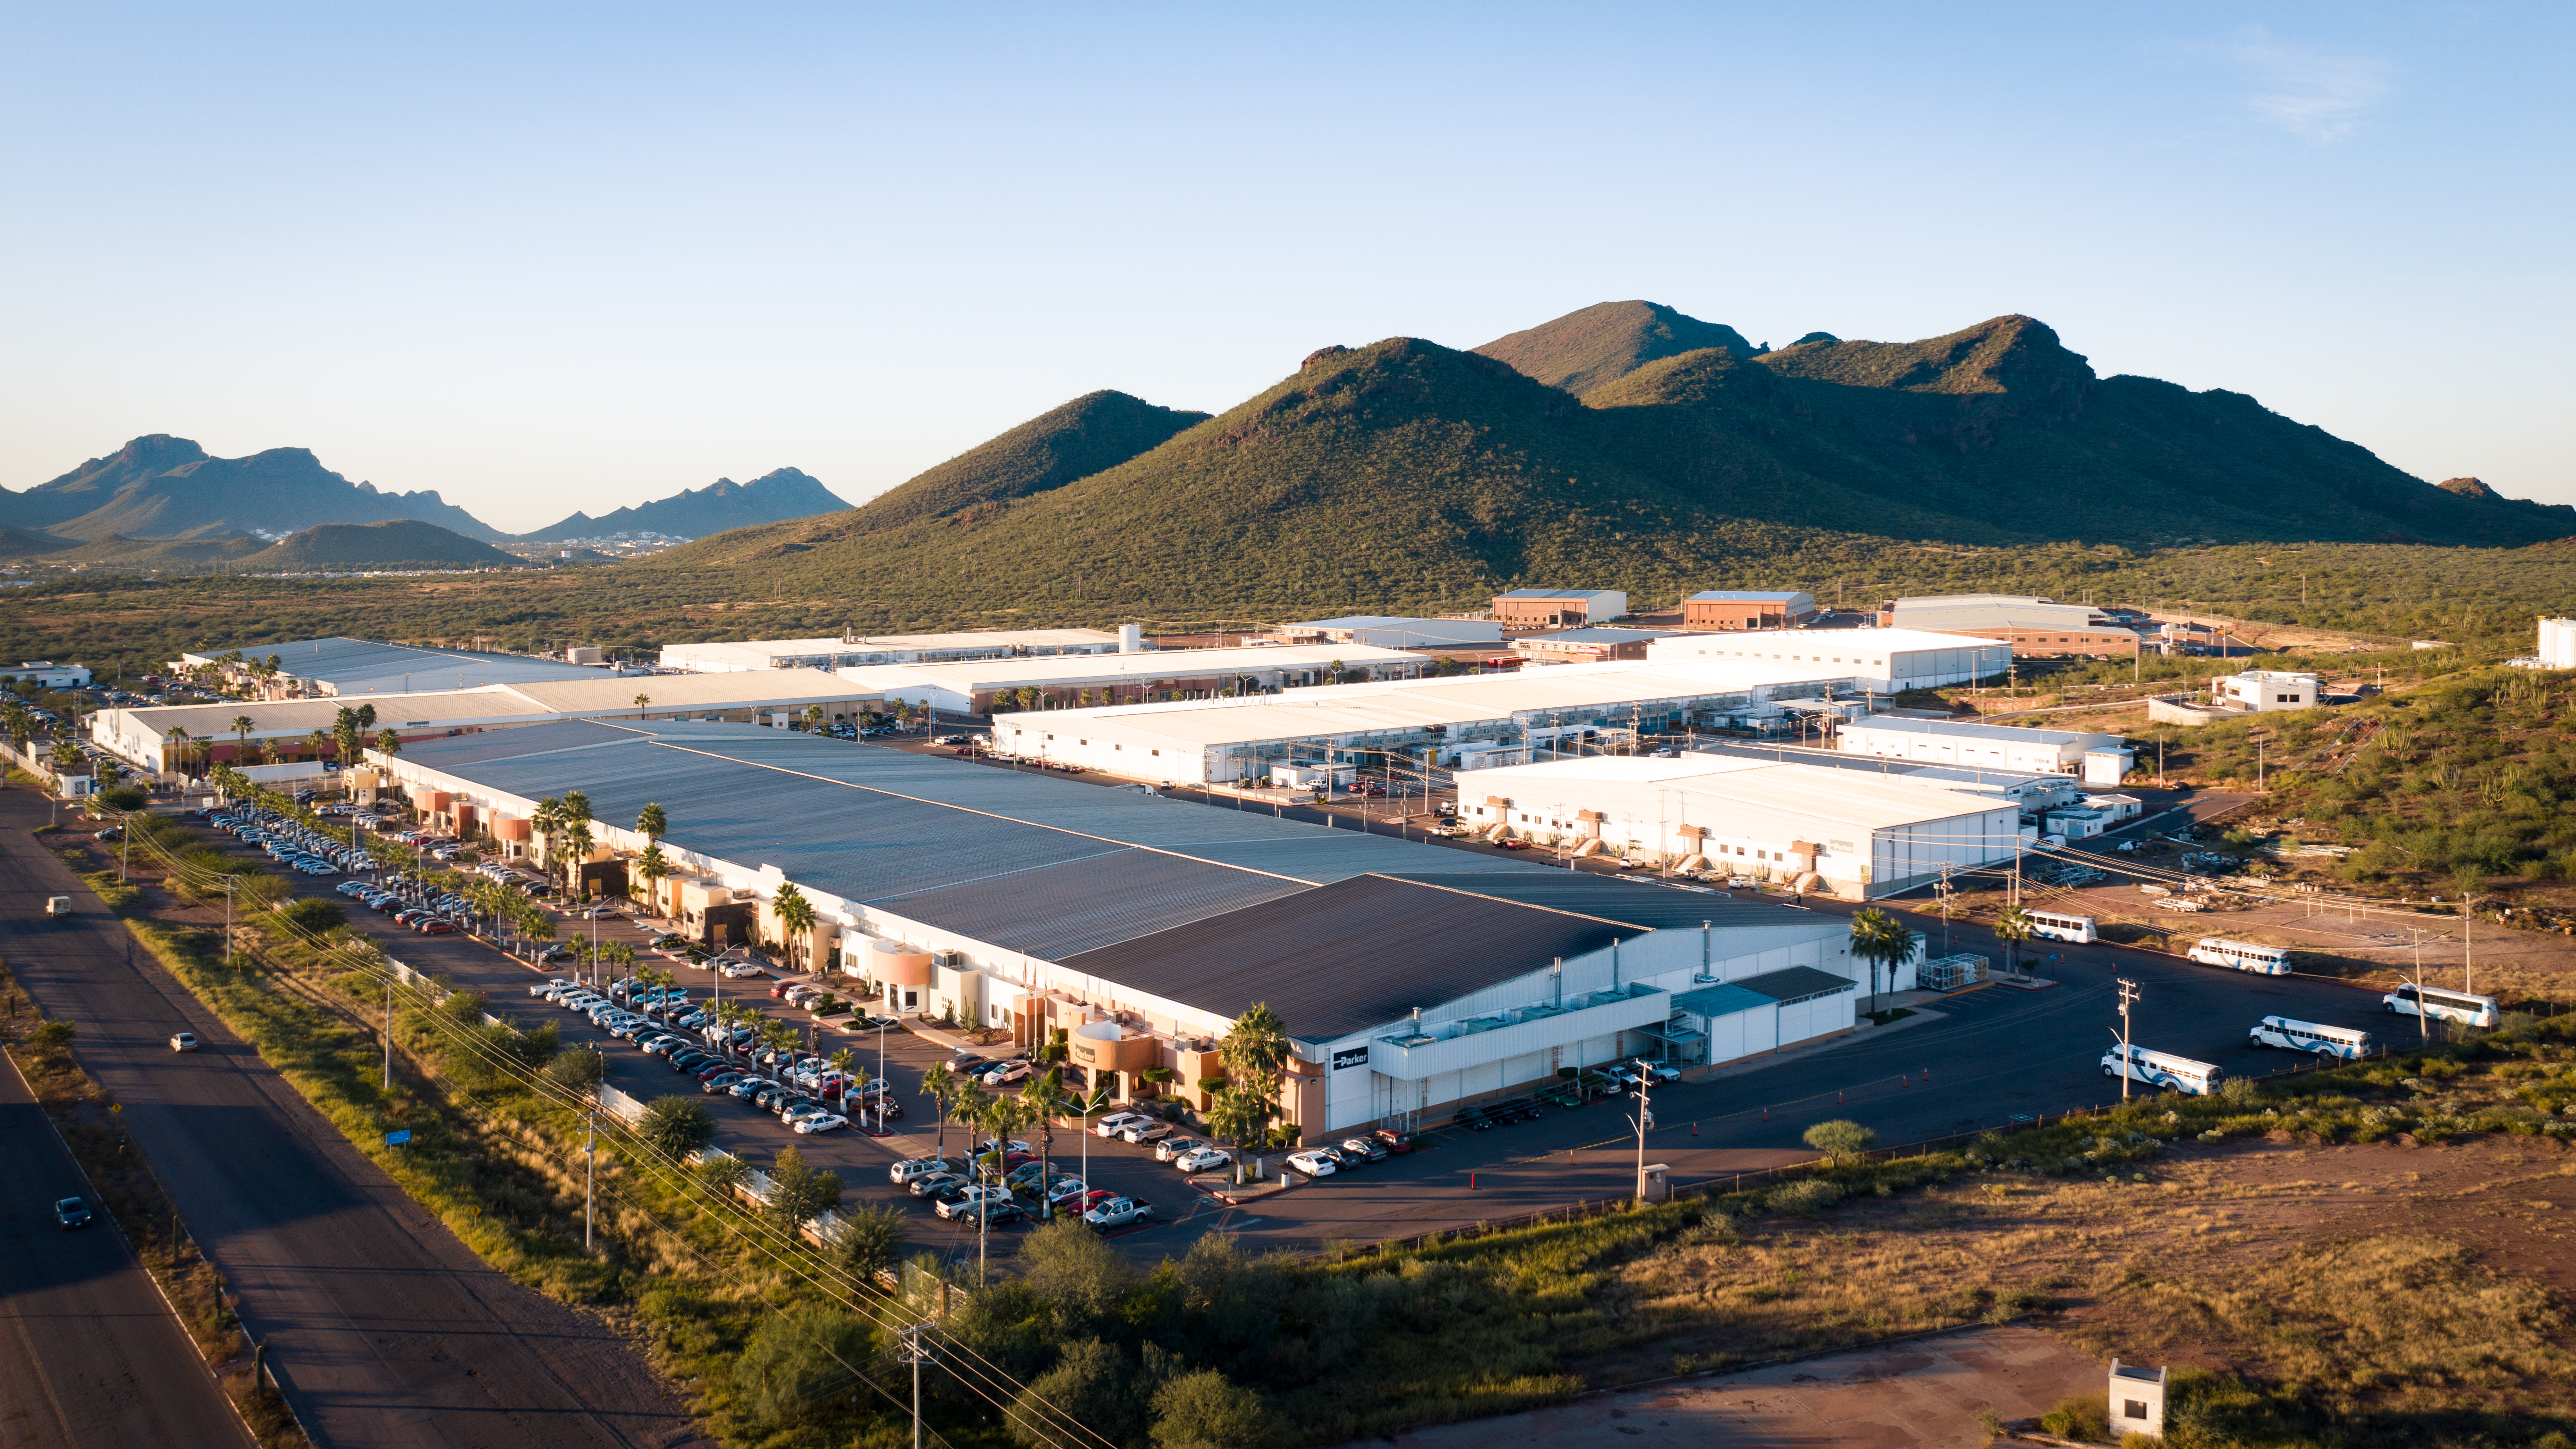 Roca Fuerte Industrial Park in Mexico where aerospace companies go to experience the benefits of manufacturing in Mexico